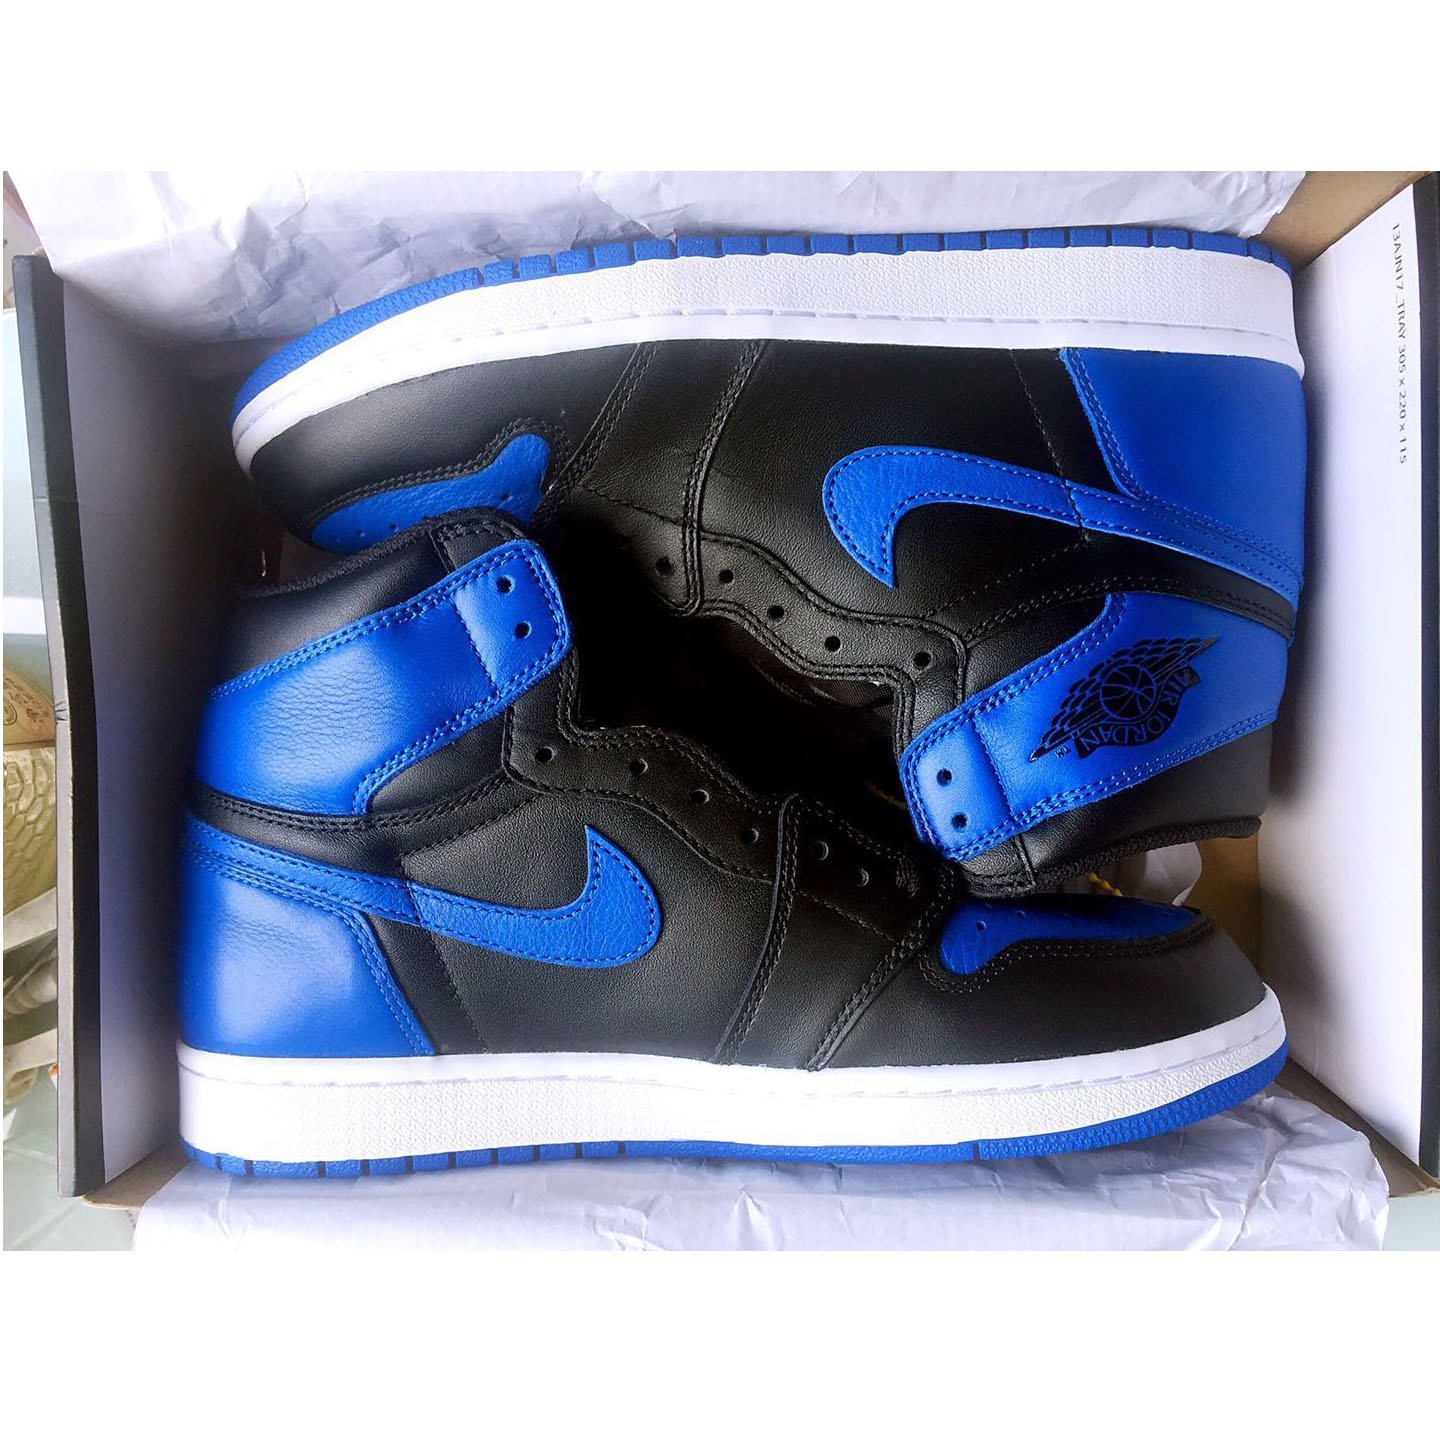 Image of Nike Air Jordan Retro 1 Black-Blue Red Contrast Sports shoes High Tops